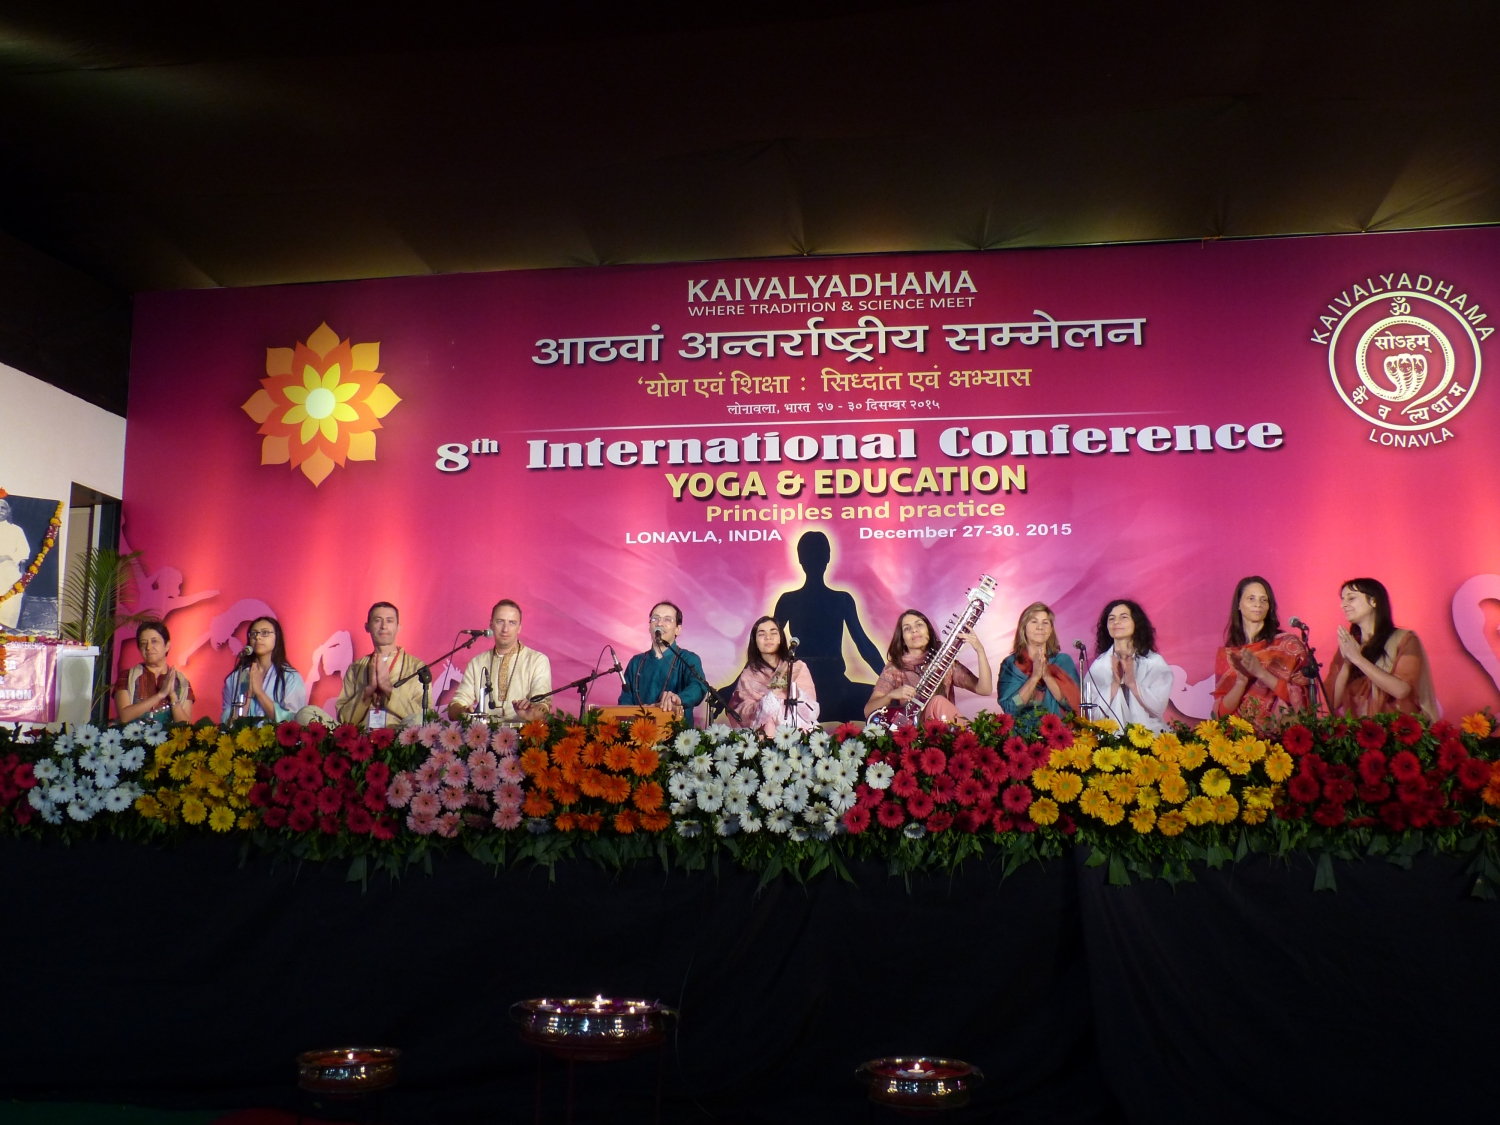 8th International Conference, Yoga & Education, Principles and Practice - Keivalyadhama Yoga Institute, Lonavala, India - 2015, décembre